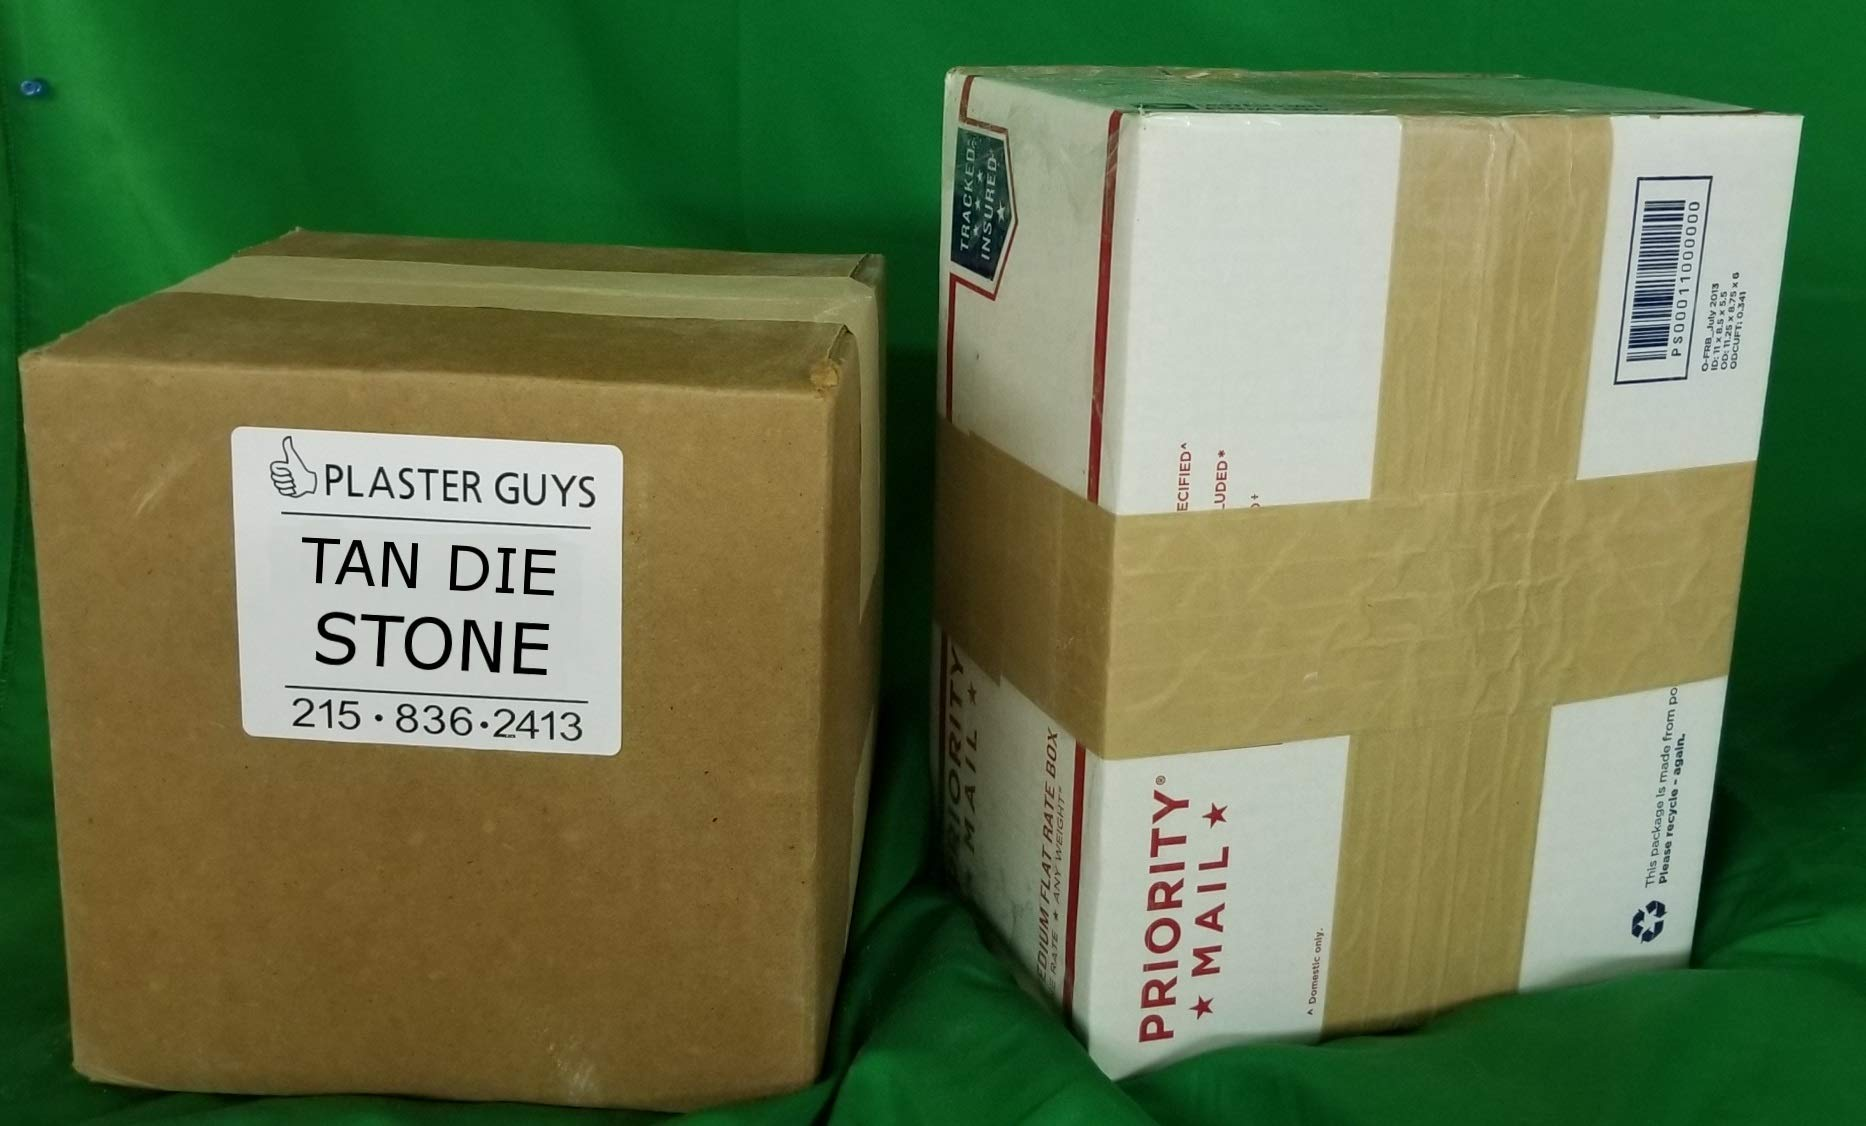 Tan Dental Die Stone 38 Lb Bag - Type 4 (IV) - Fast Shipping! Made in The USA!